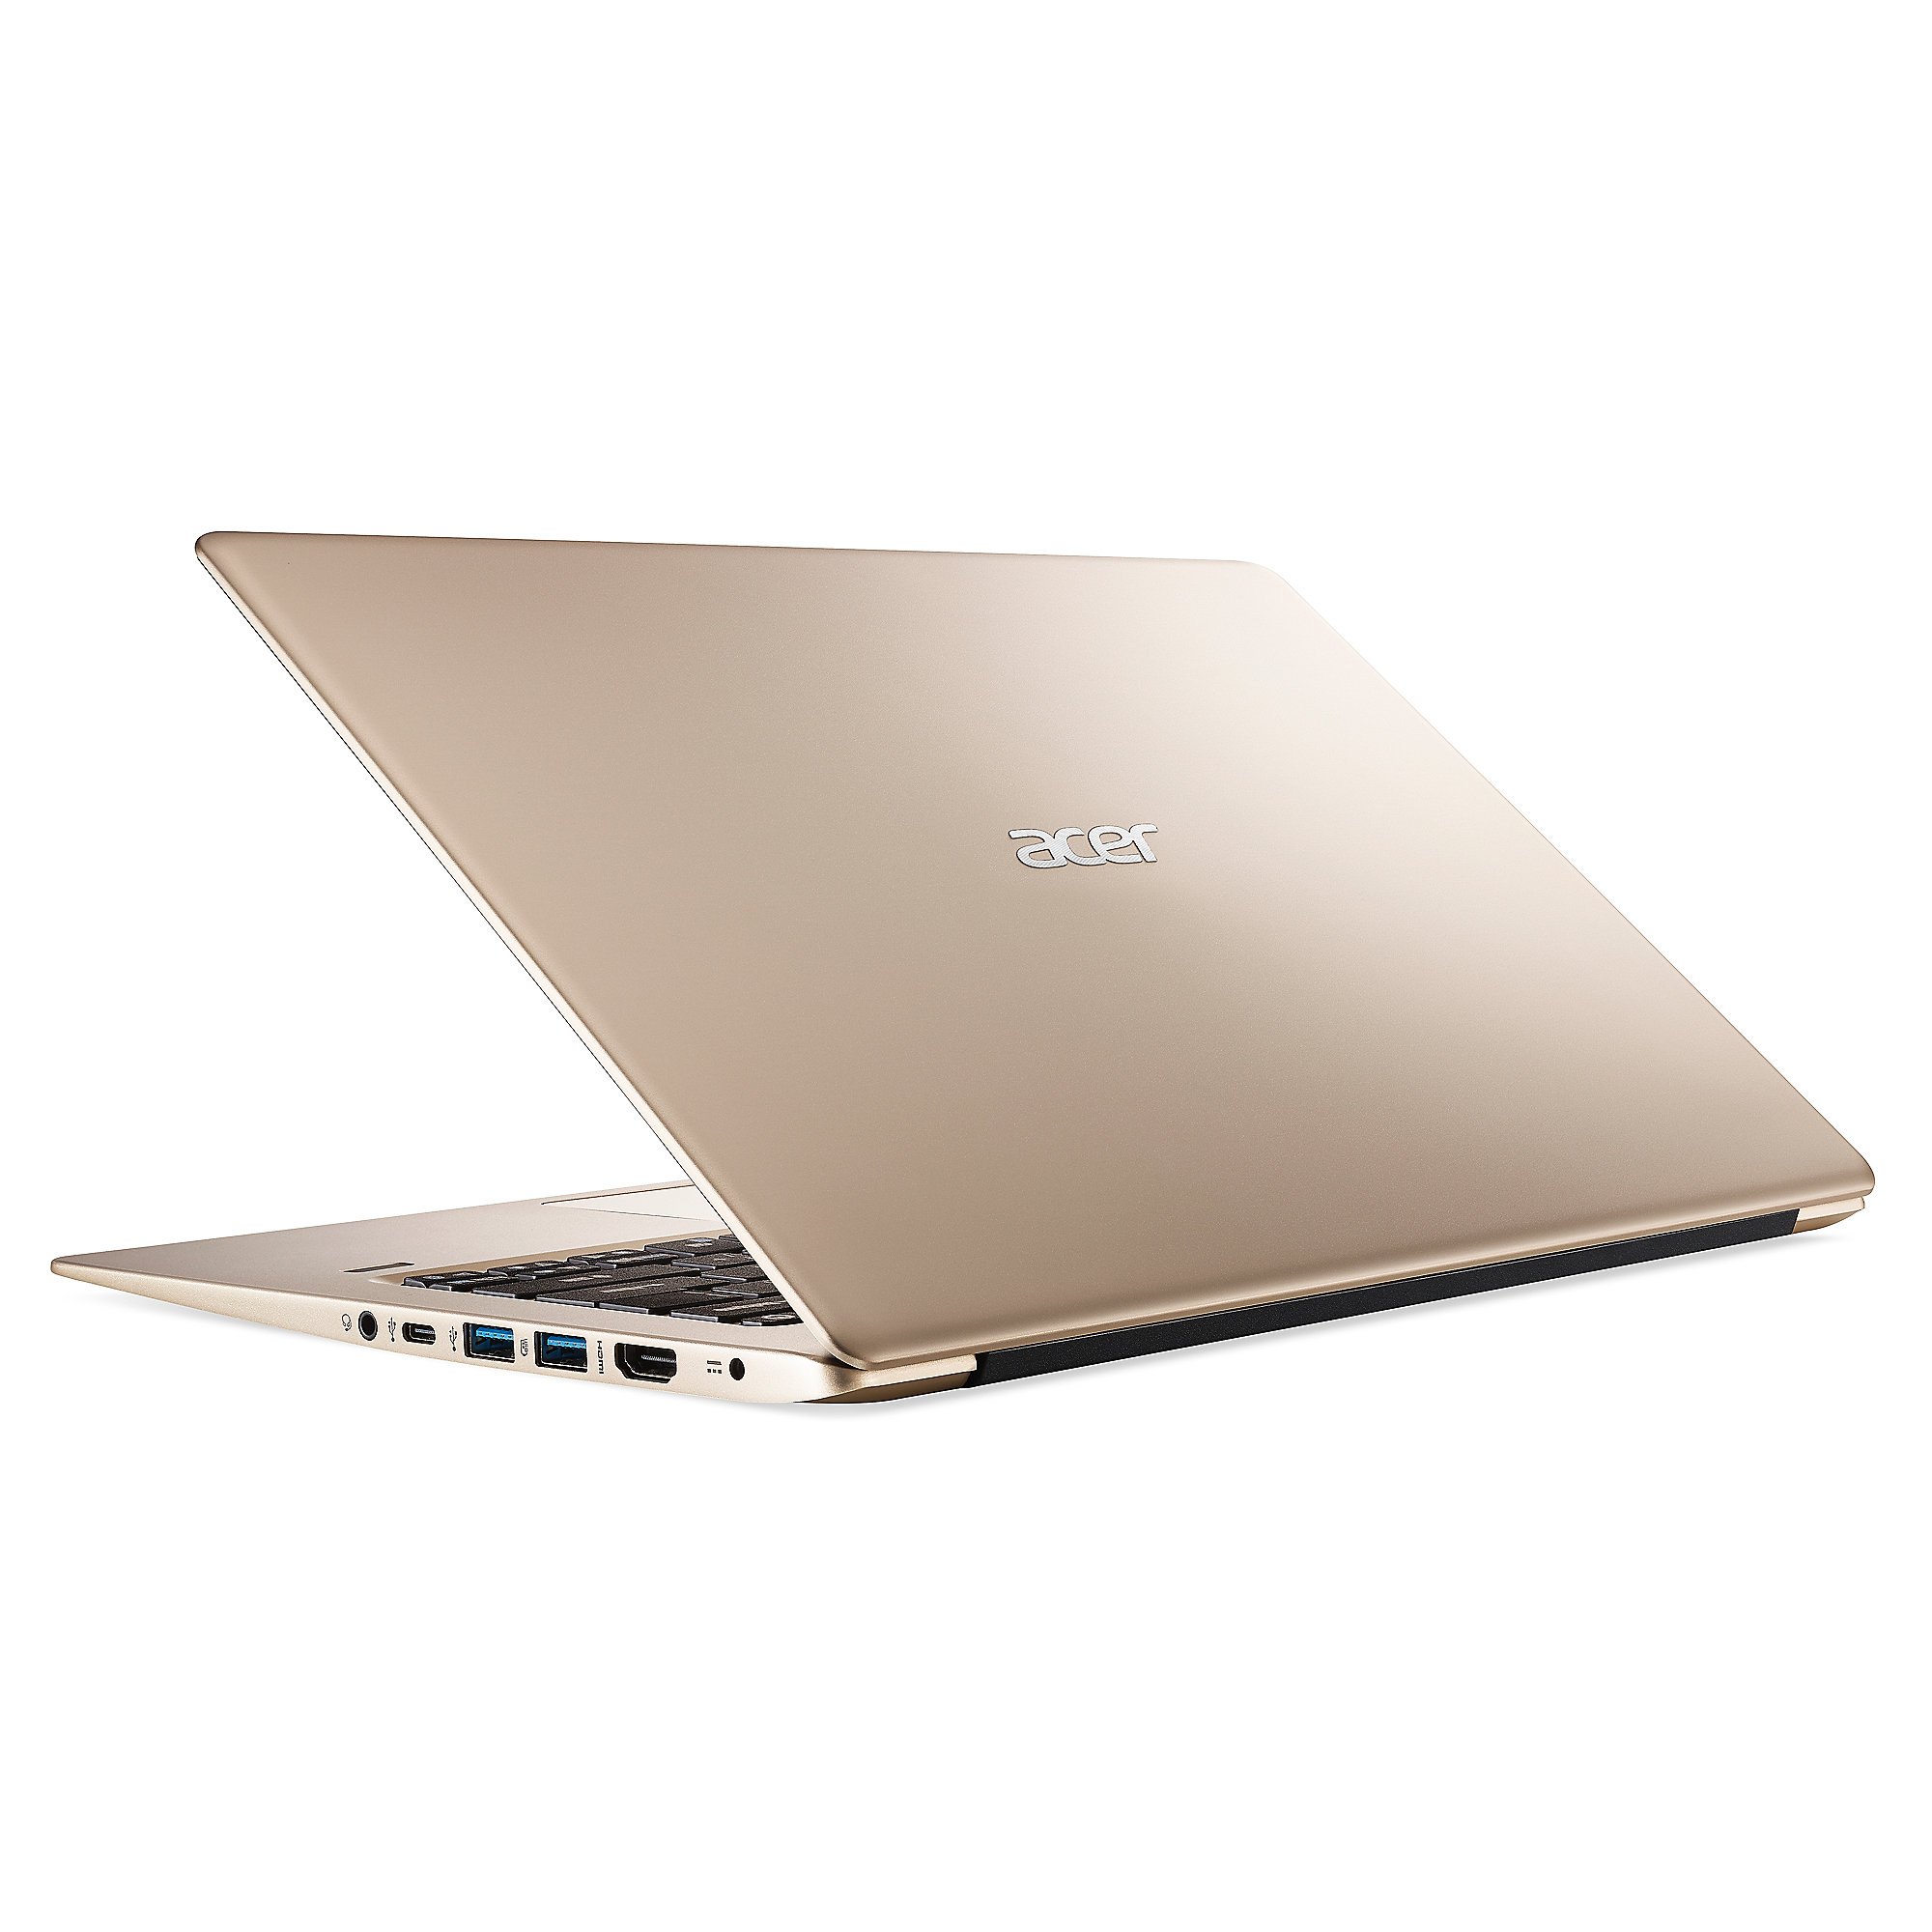 "Acer Swift 1 SF113-31-C10D gold N3450 4GB/64GB eMMC 13"" FHD W10"